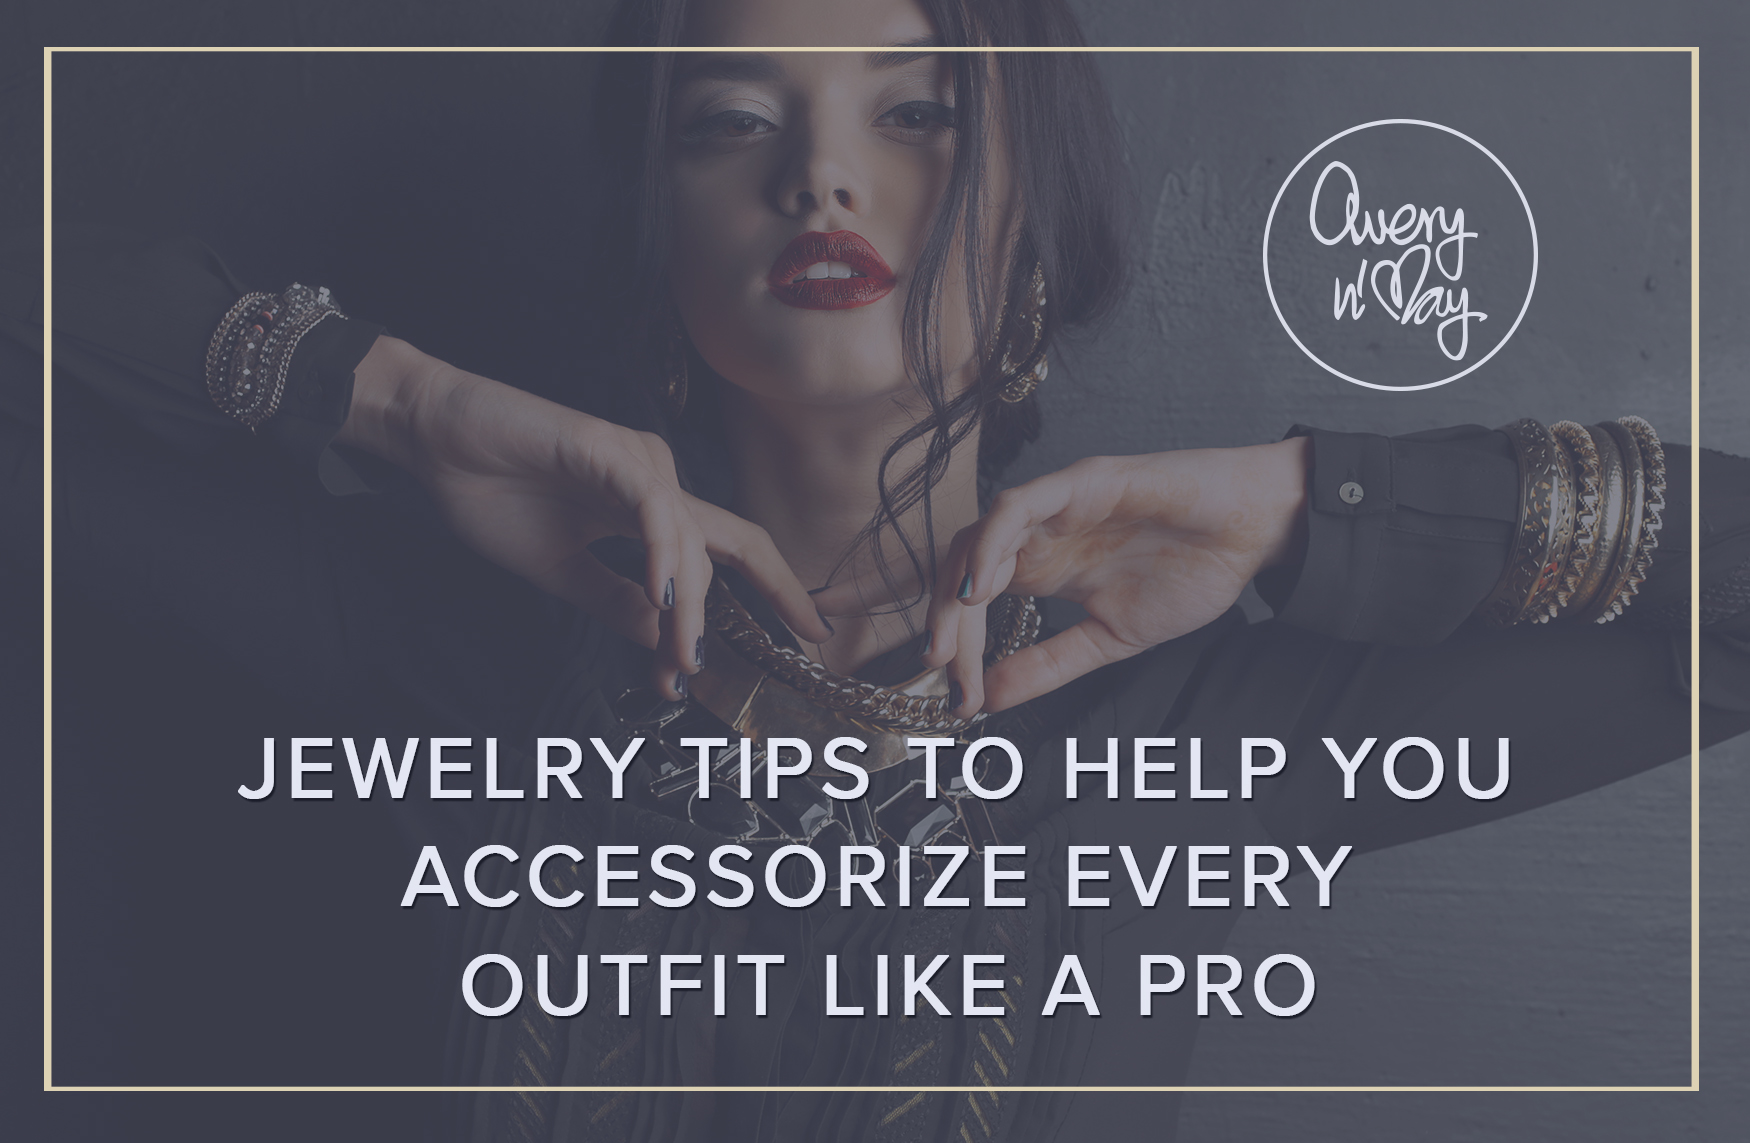 Jewelry Tips To Help You Accessorize Every Outfit Like A Pro